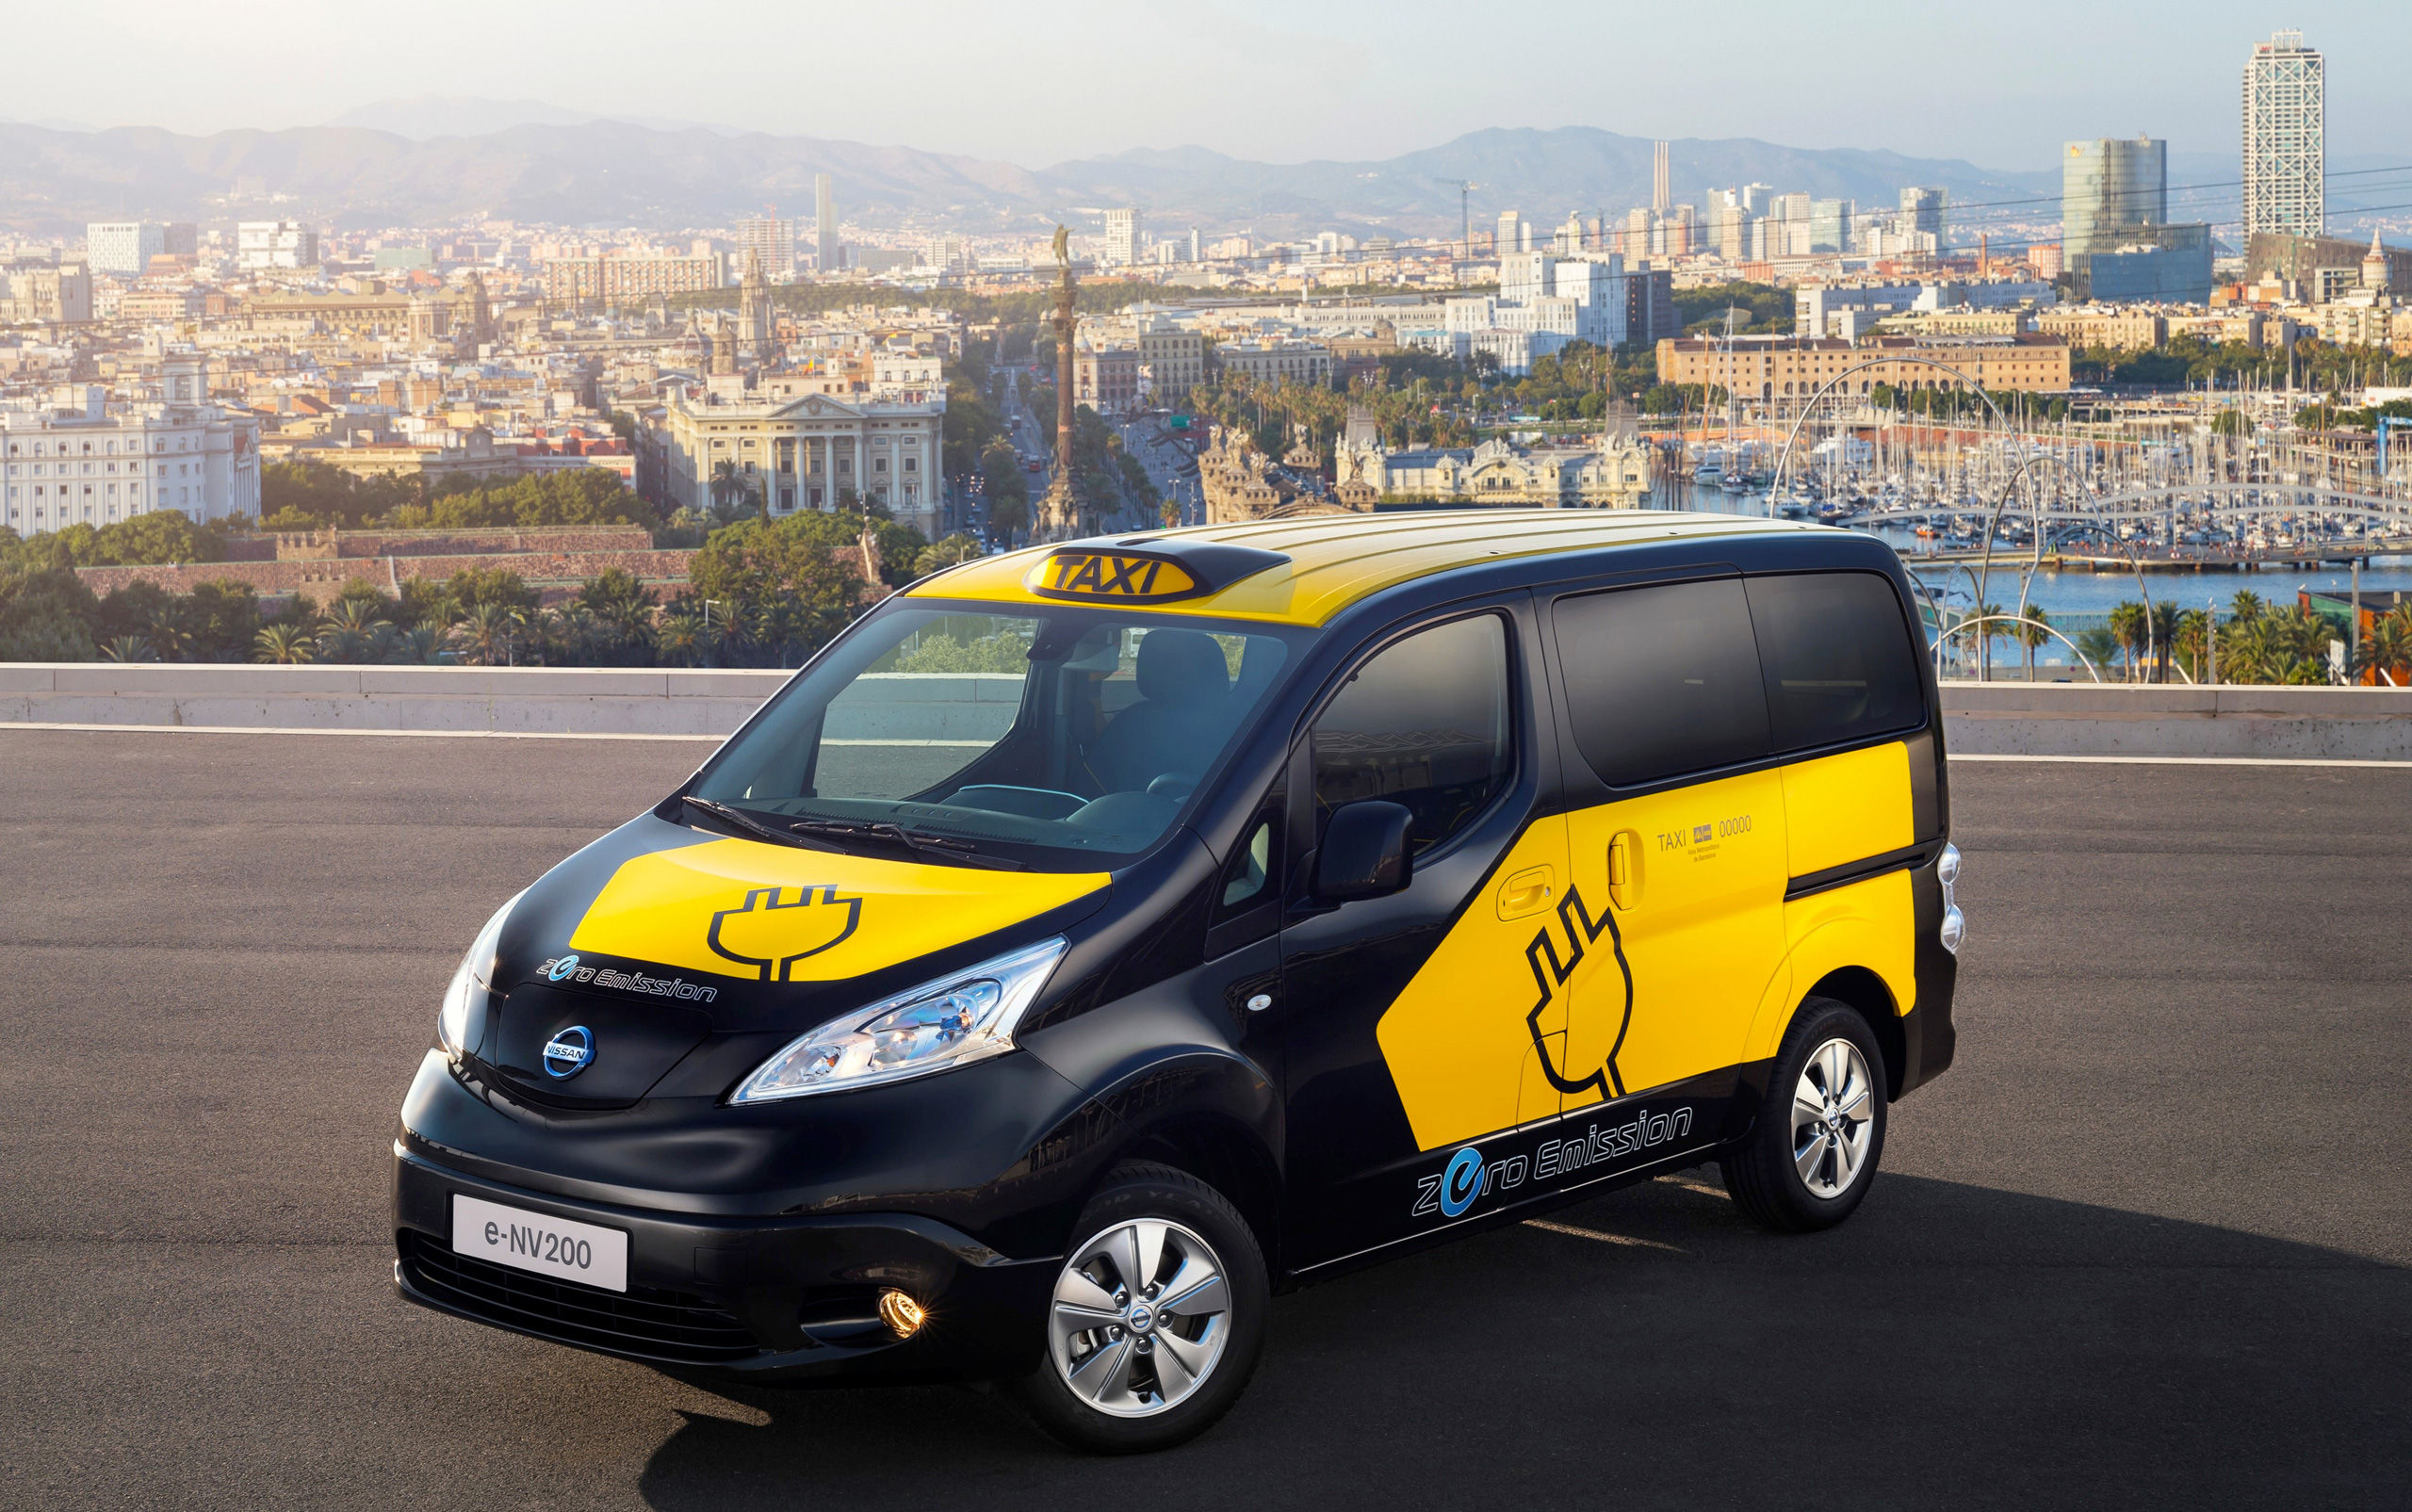 Barcelona to use nissan e nv200 electric taxi cabs - Cab in barcelona ...